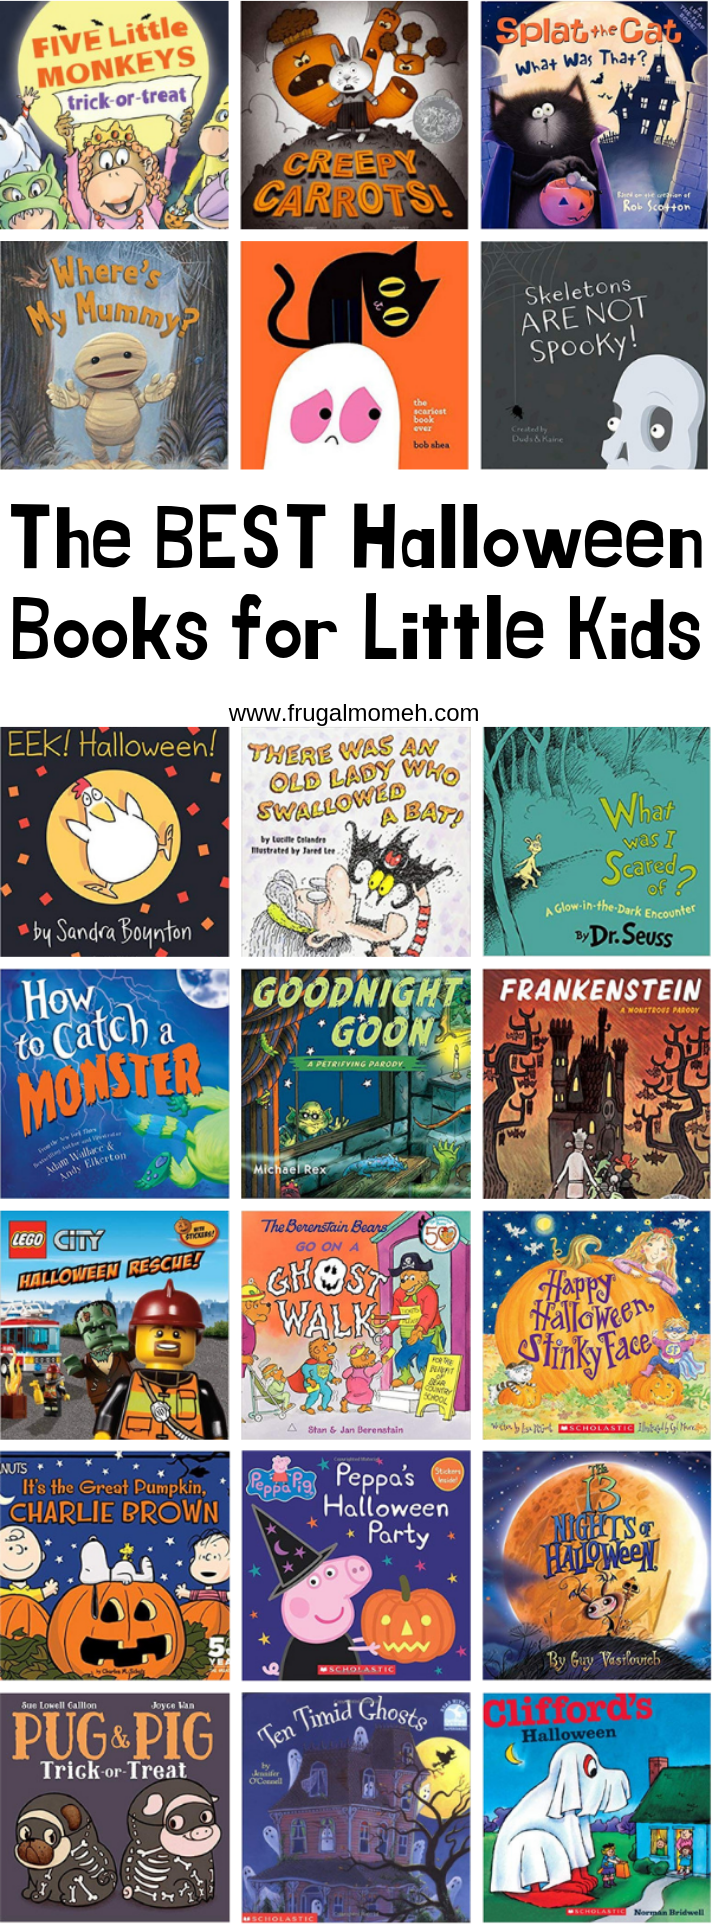 Get into the spirit of the season with a selection of the best Halloween books for little kids. These not-so-spooky reads are fun for little kids and sure to be a hit.